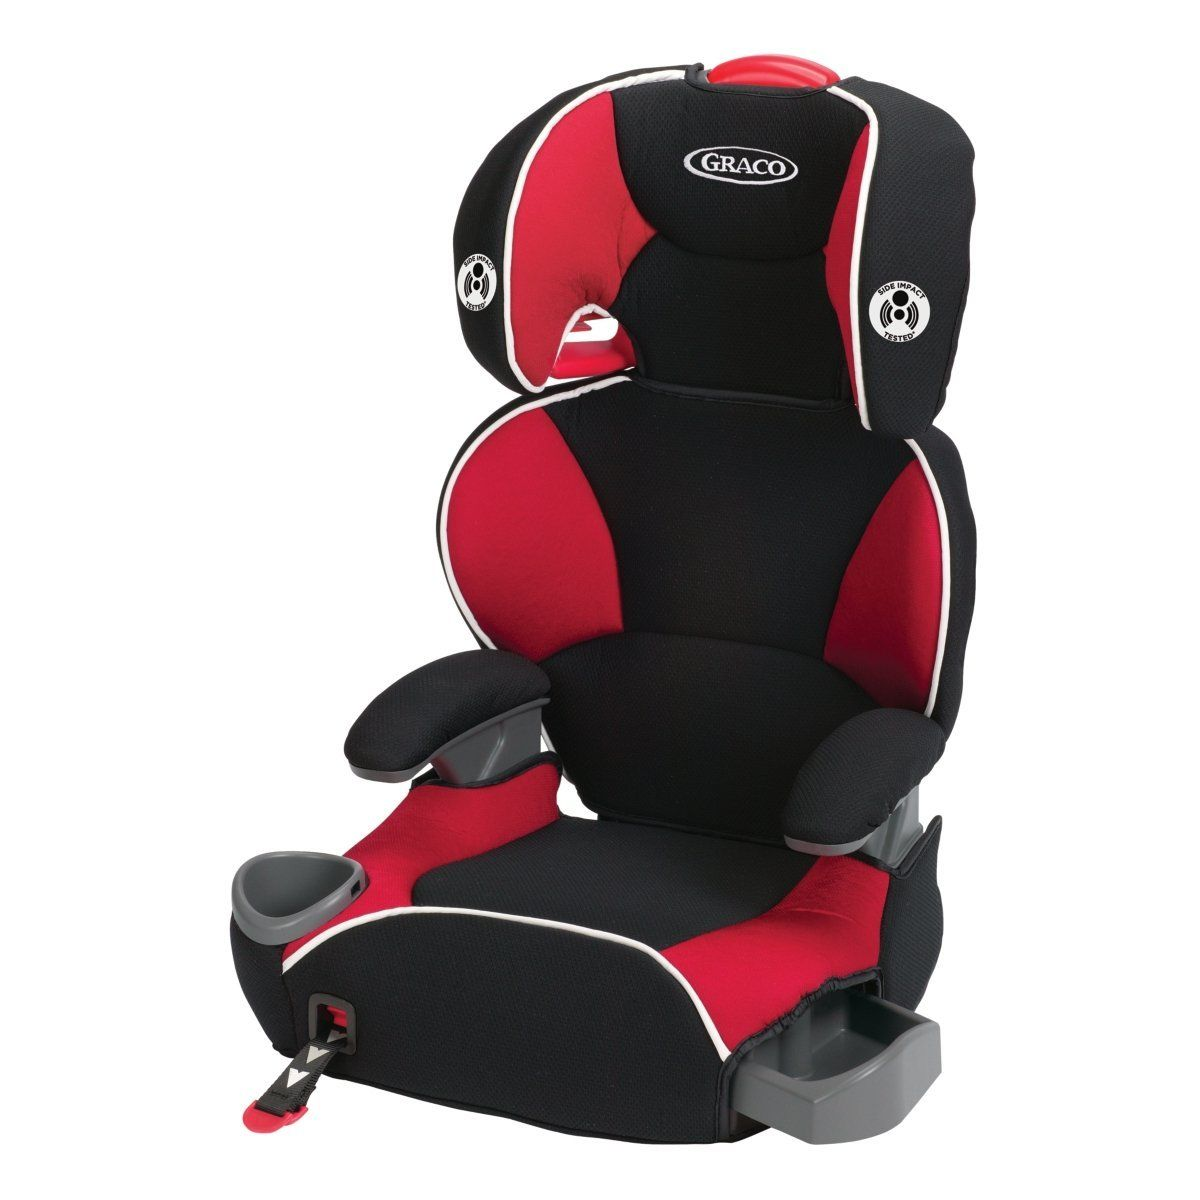 Headline for Top 5 Best Convertible Car Seats Under $100-Best Convertible Car Seat Reviews